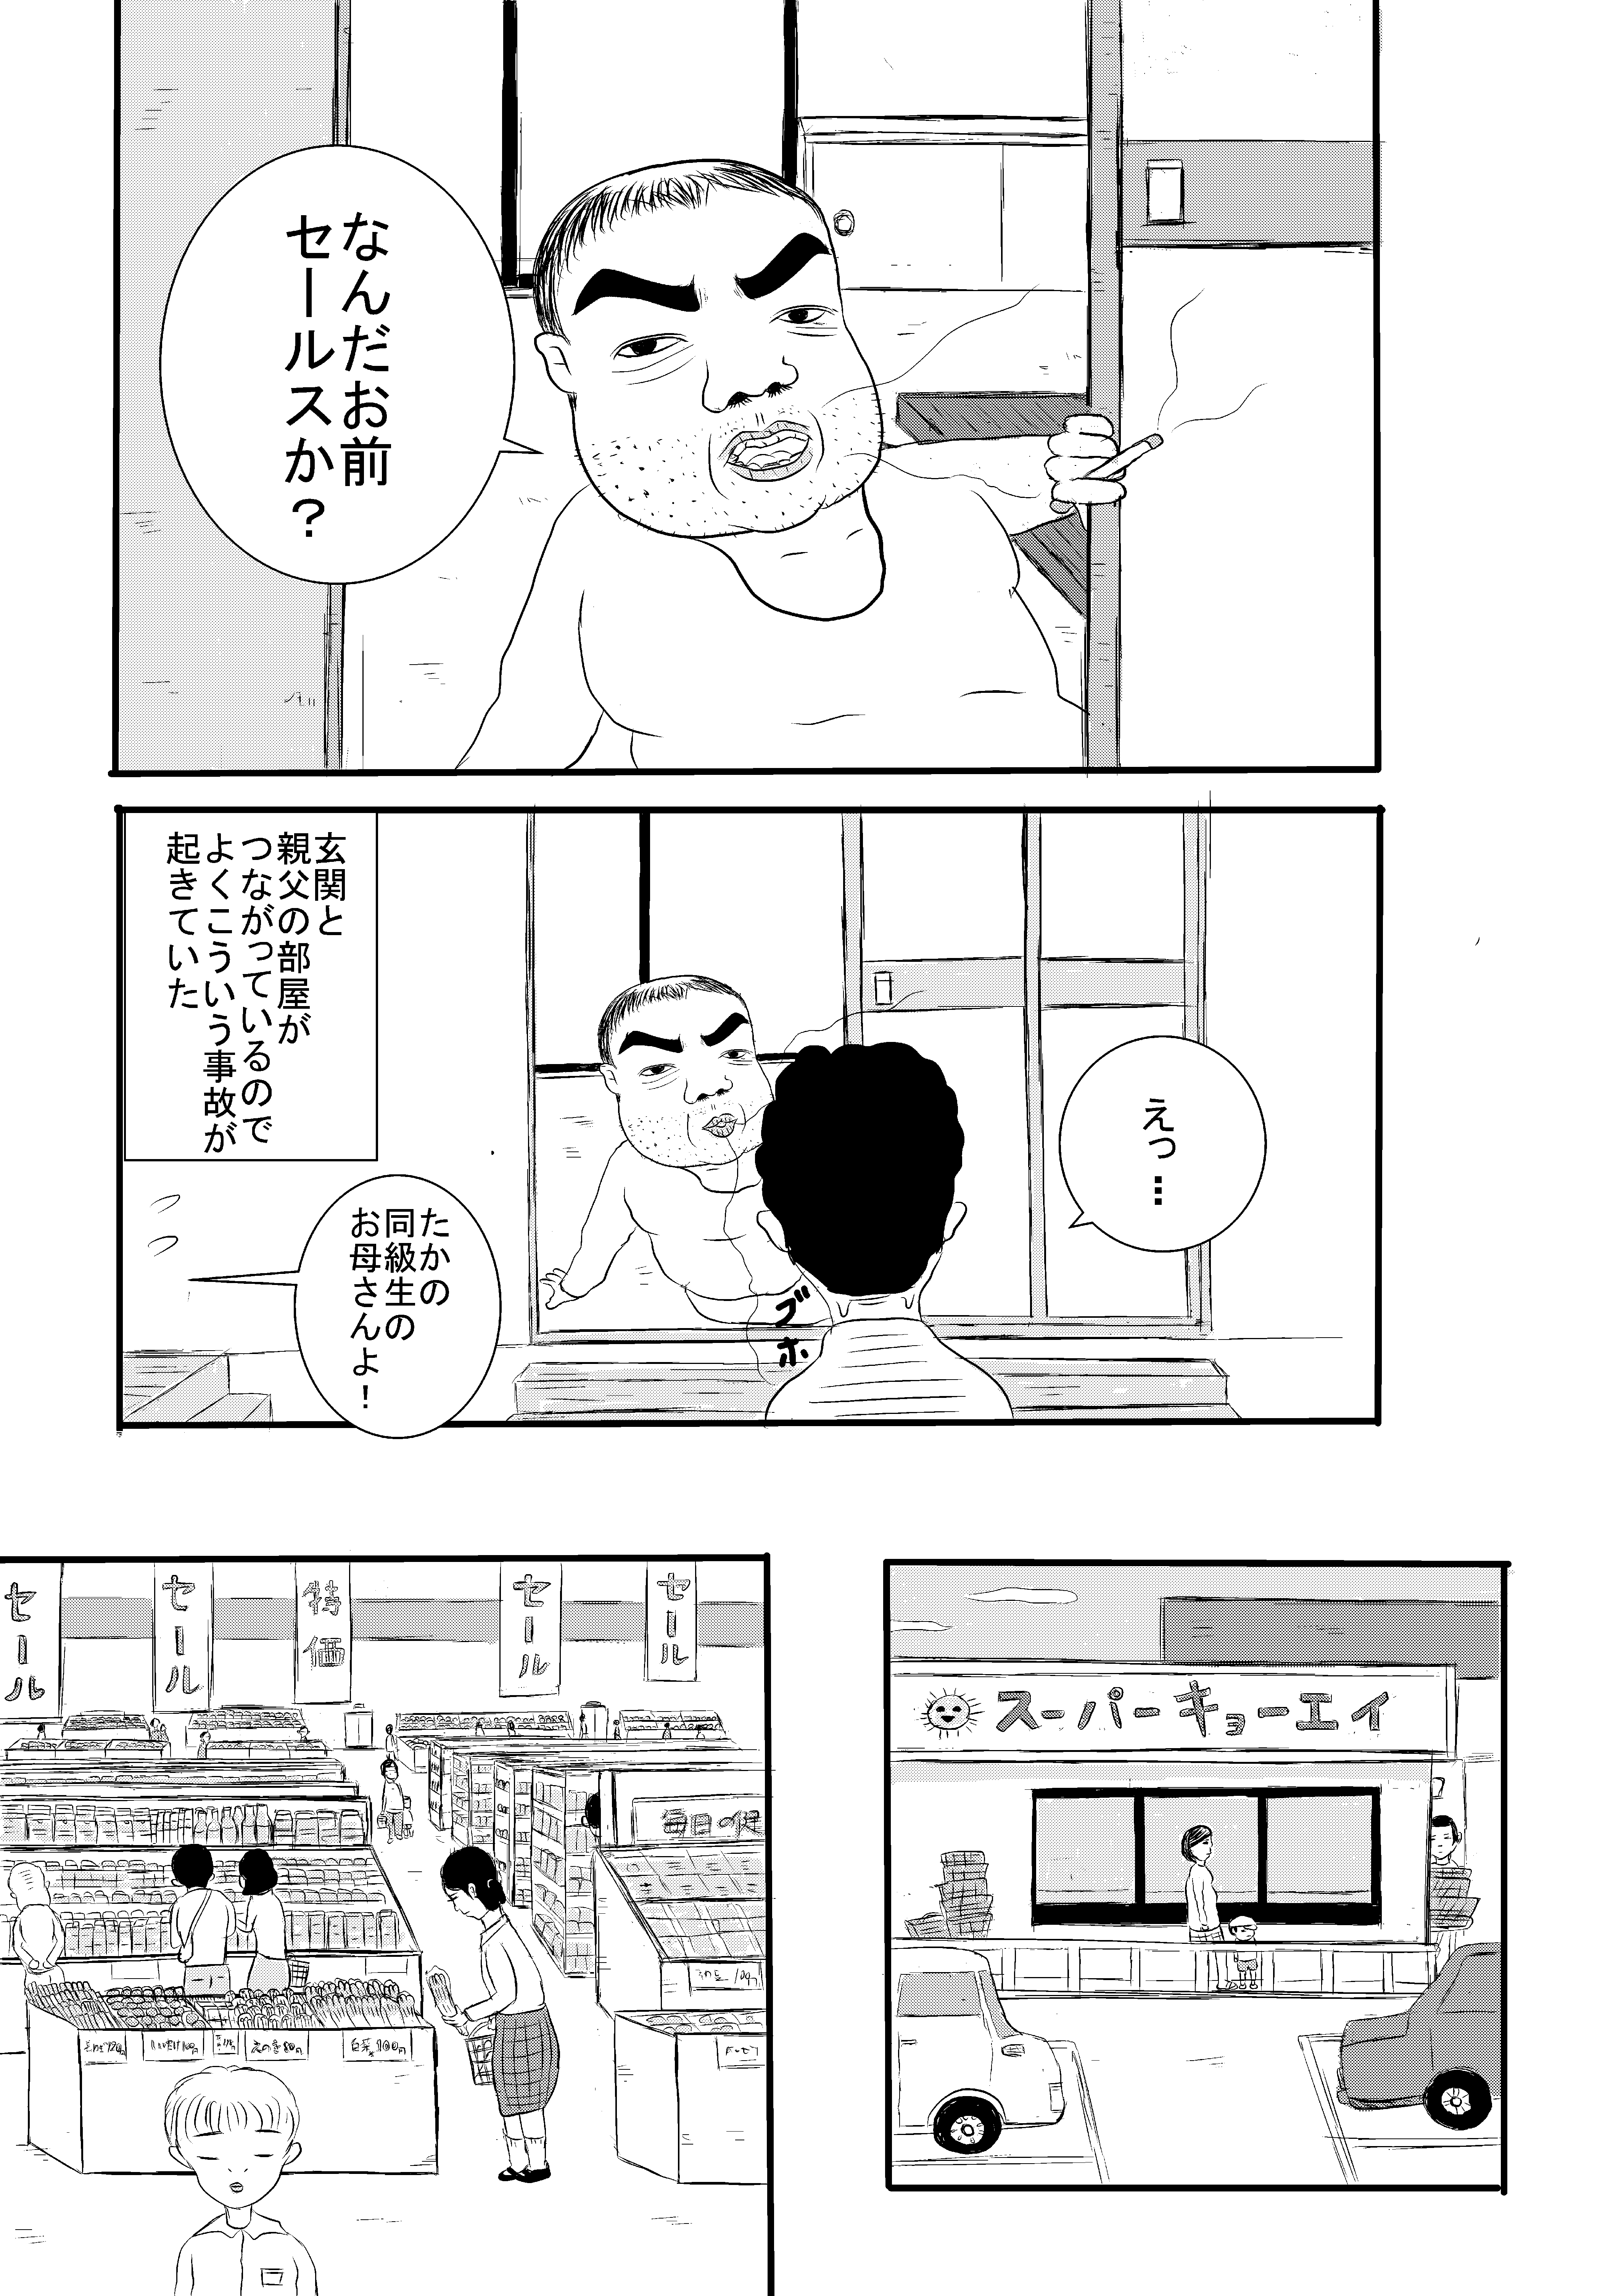 20180429121521bfc.png